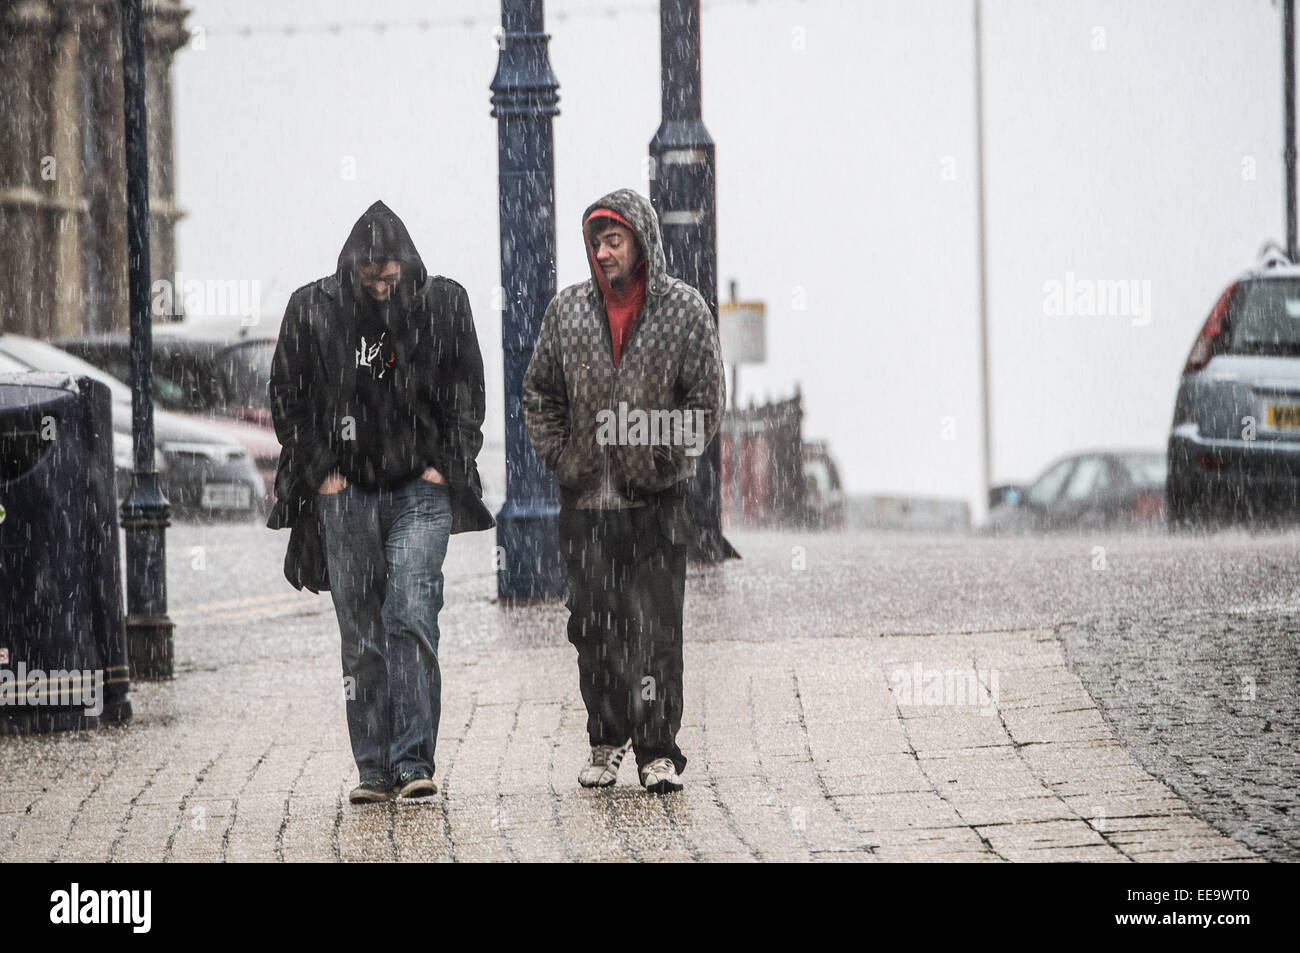 Aberystwyth, Wales, UK. 15th January, 2015. UK weather. Overnight stormy weather brought driving rain and heavy - Stock Image